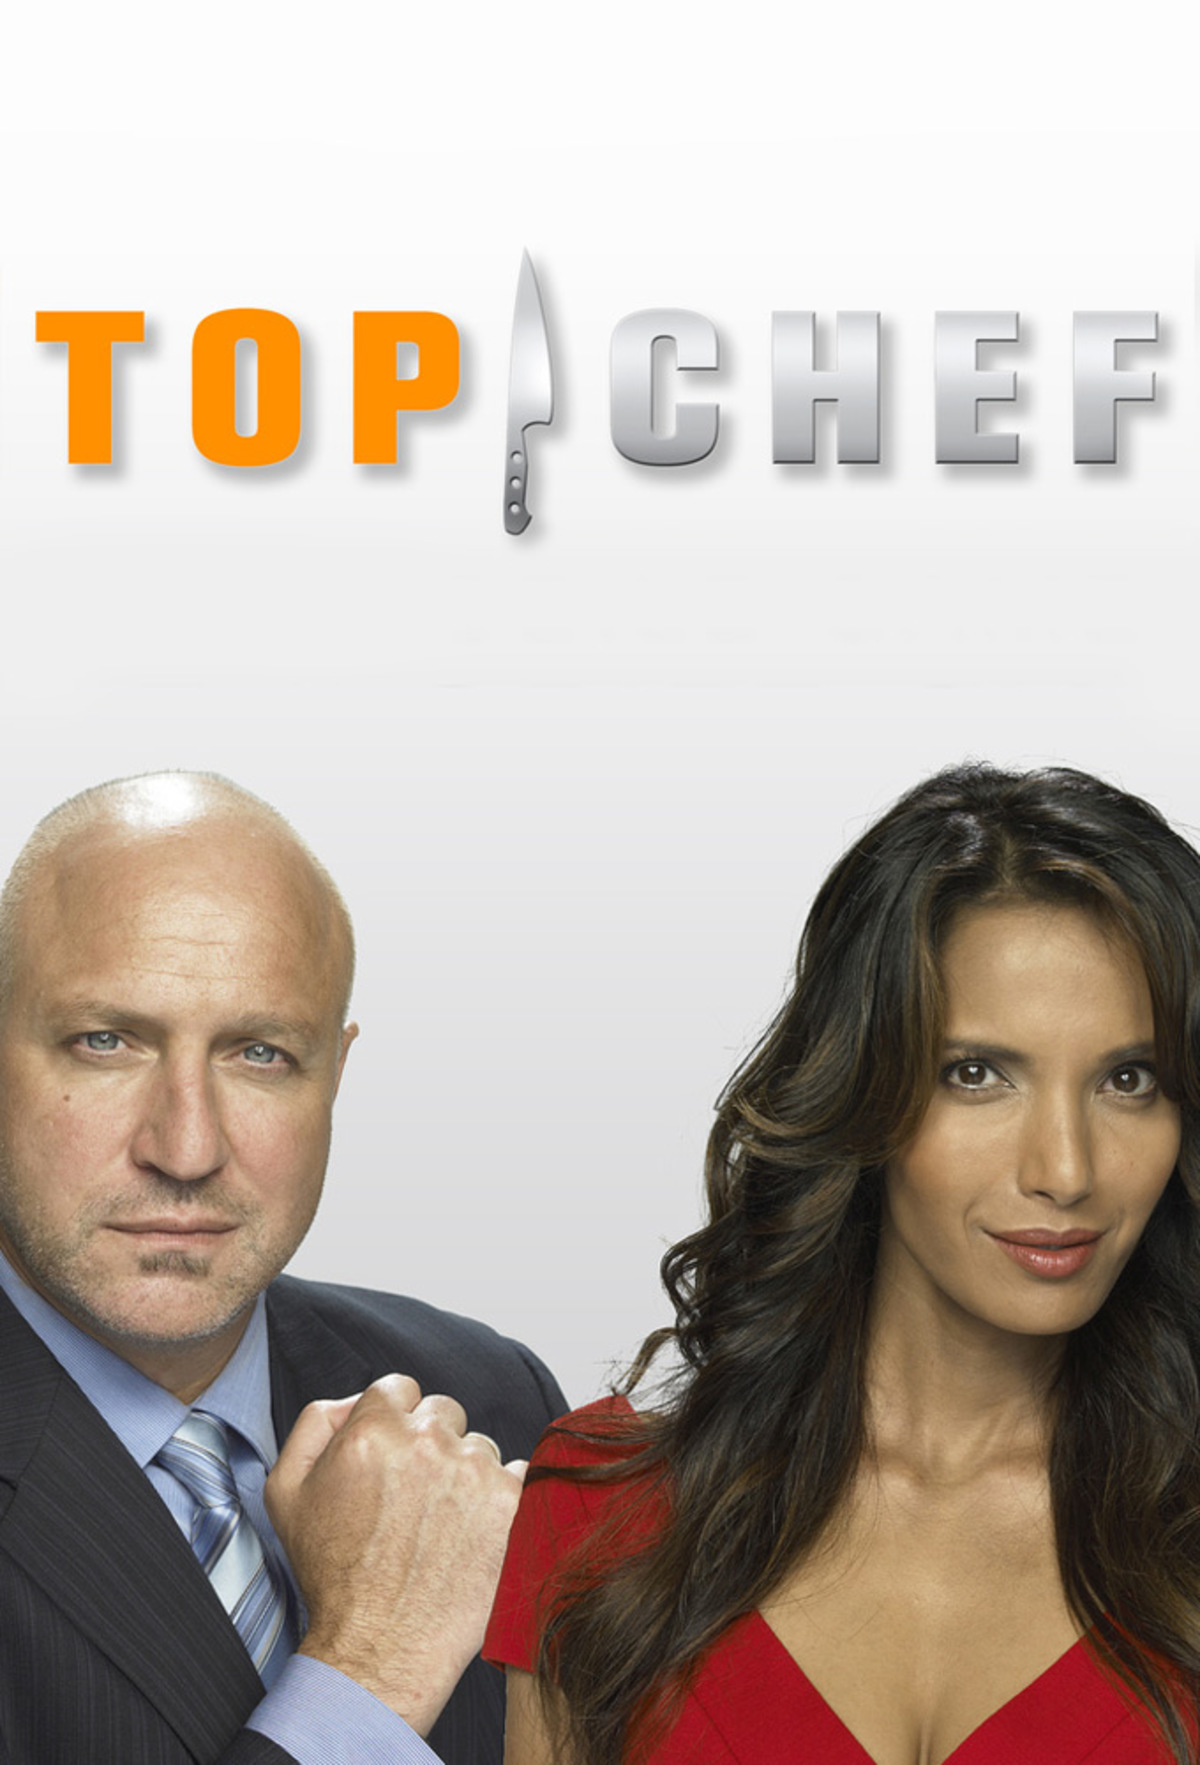 Top Chef - Season 17 Episode 4 - You're So Fresh!